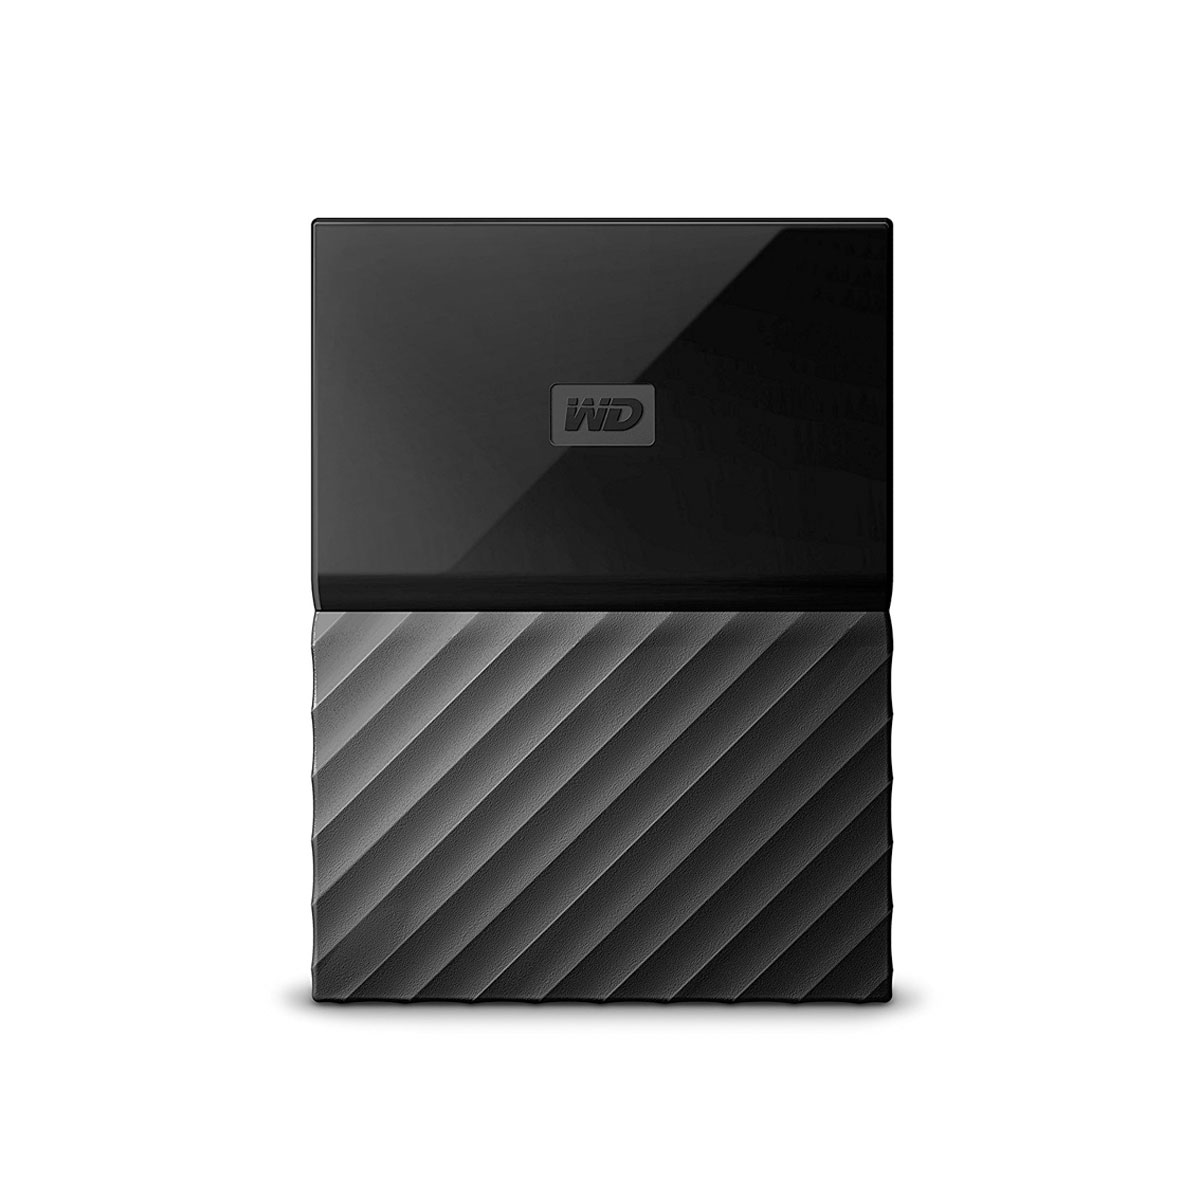 Western Digital - My Passport 2TB Auto Backup Password Protection Portable HDD - Black